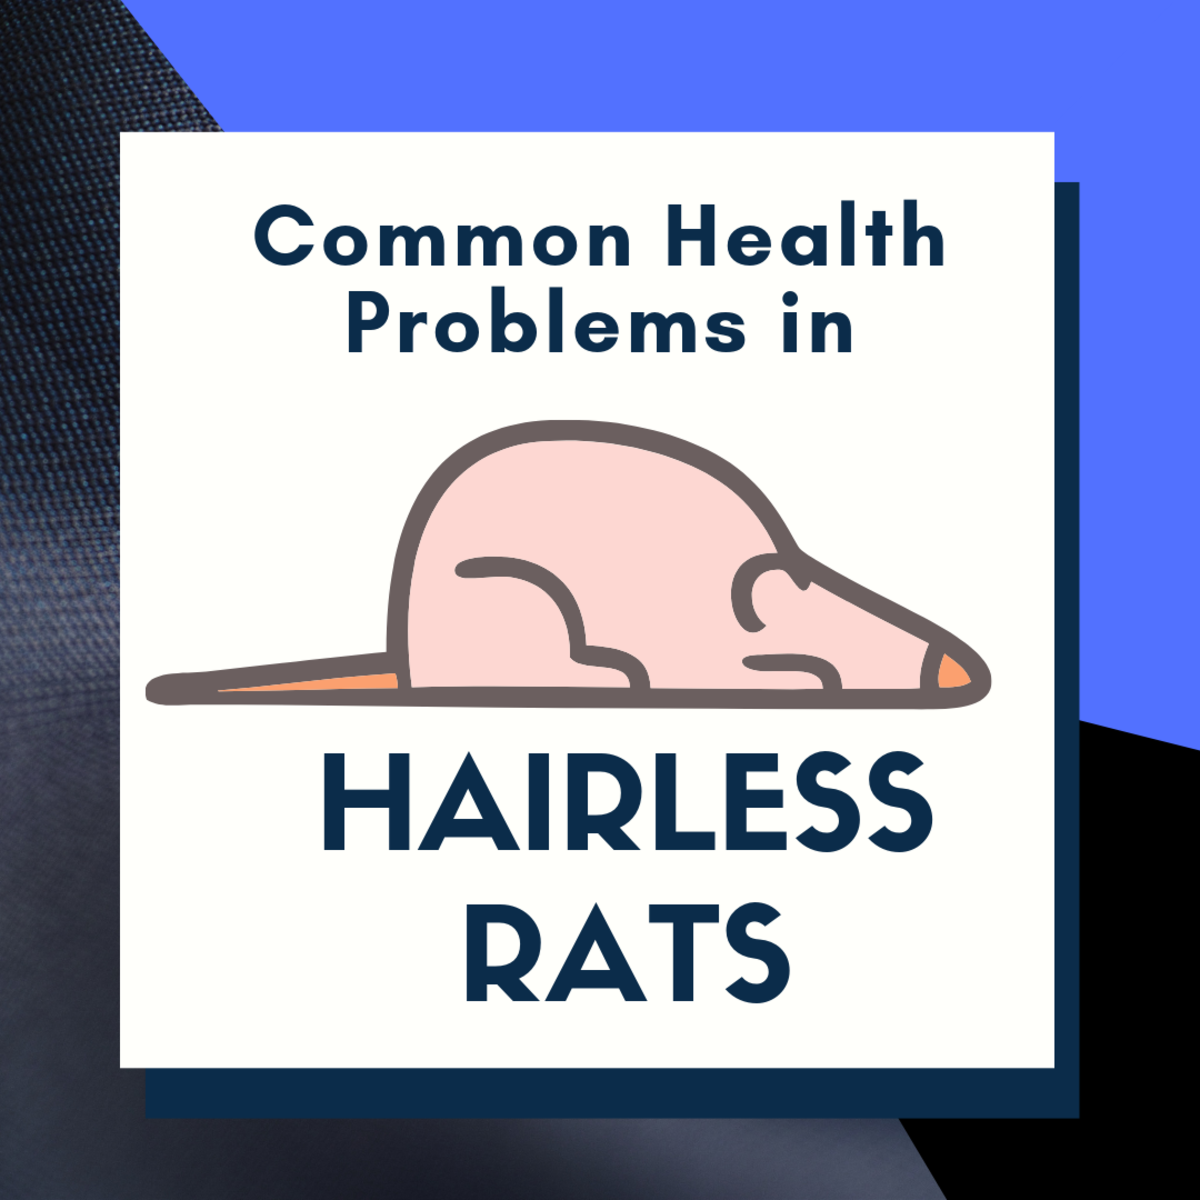 Common Hairless Rat Health Problems